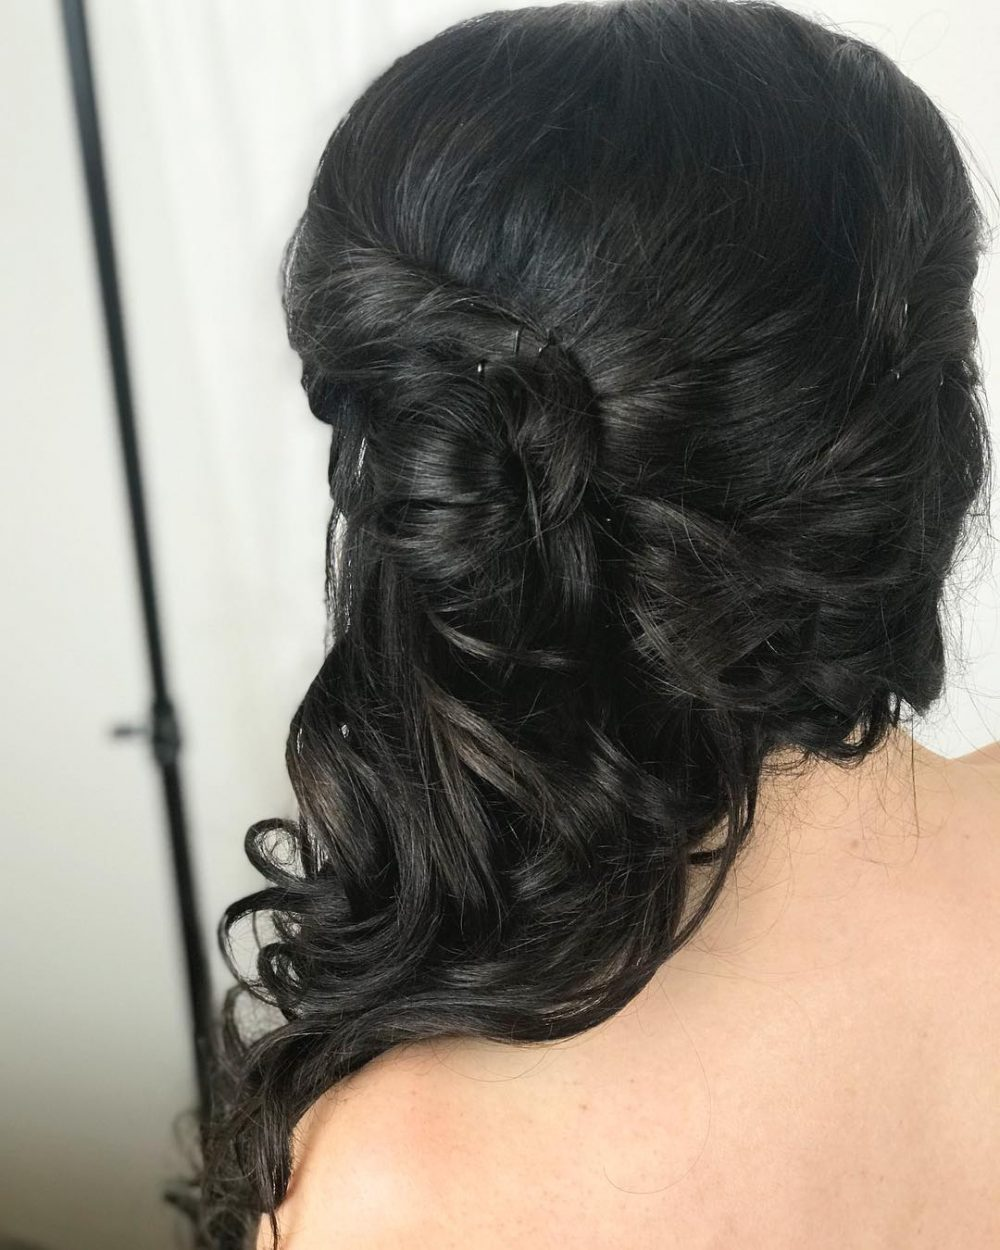 Princess Hair hairstyle